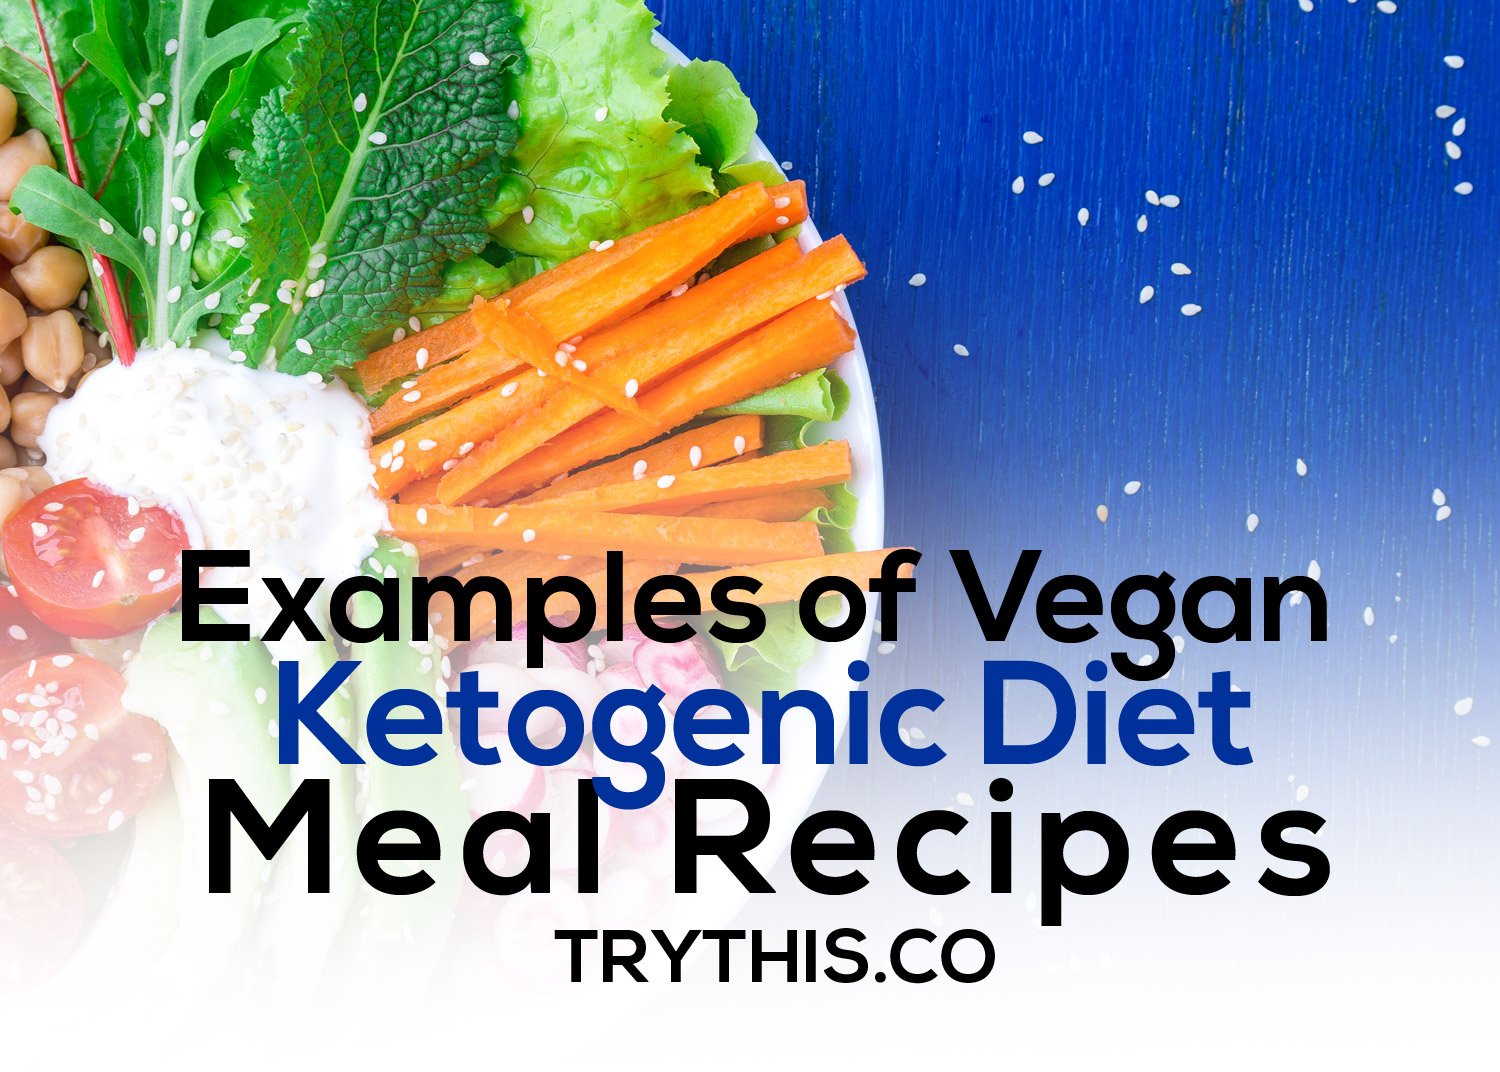 Examples of Vegan Ketogenic Diet Meal Recipes